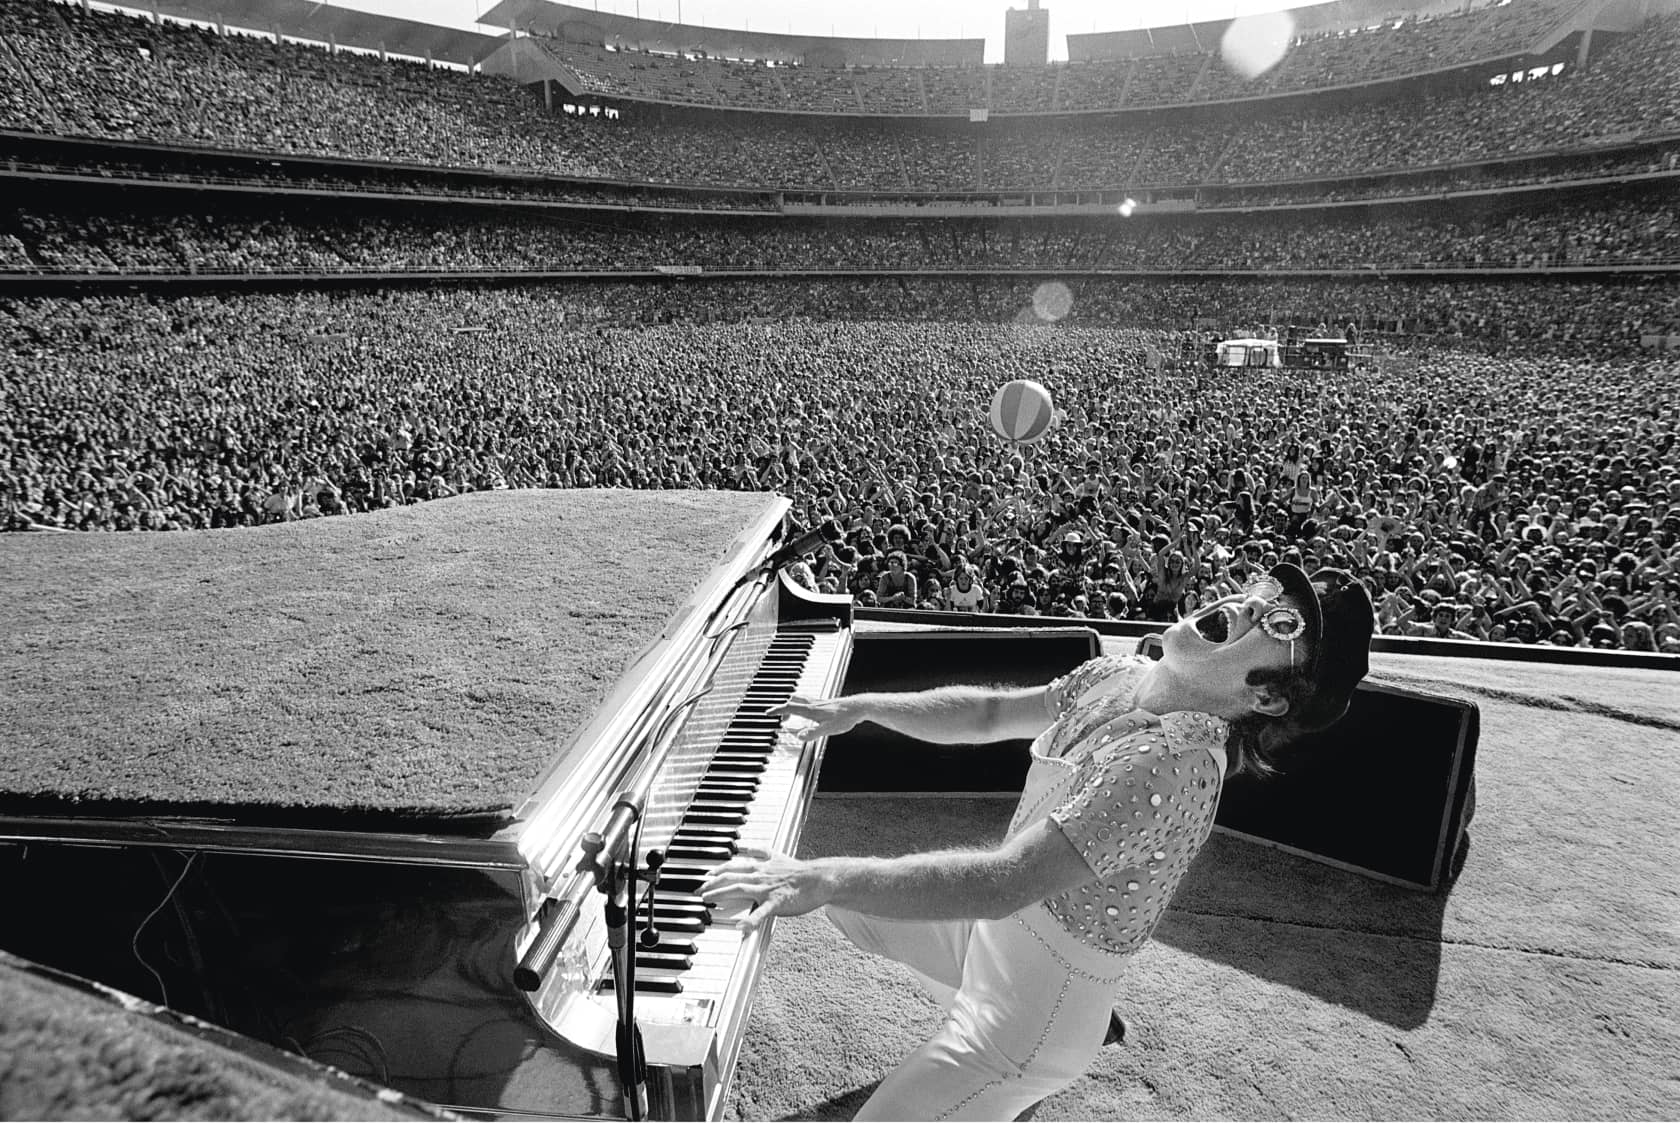 Terry O'Neill, Elton John, Dodgers Stadium - Black & White, 1975